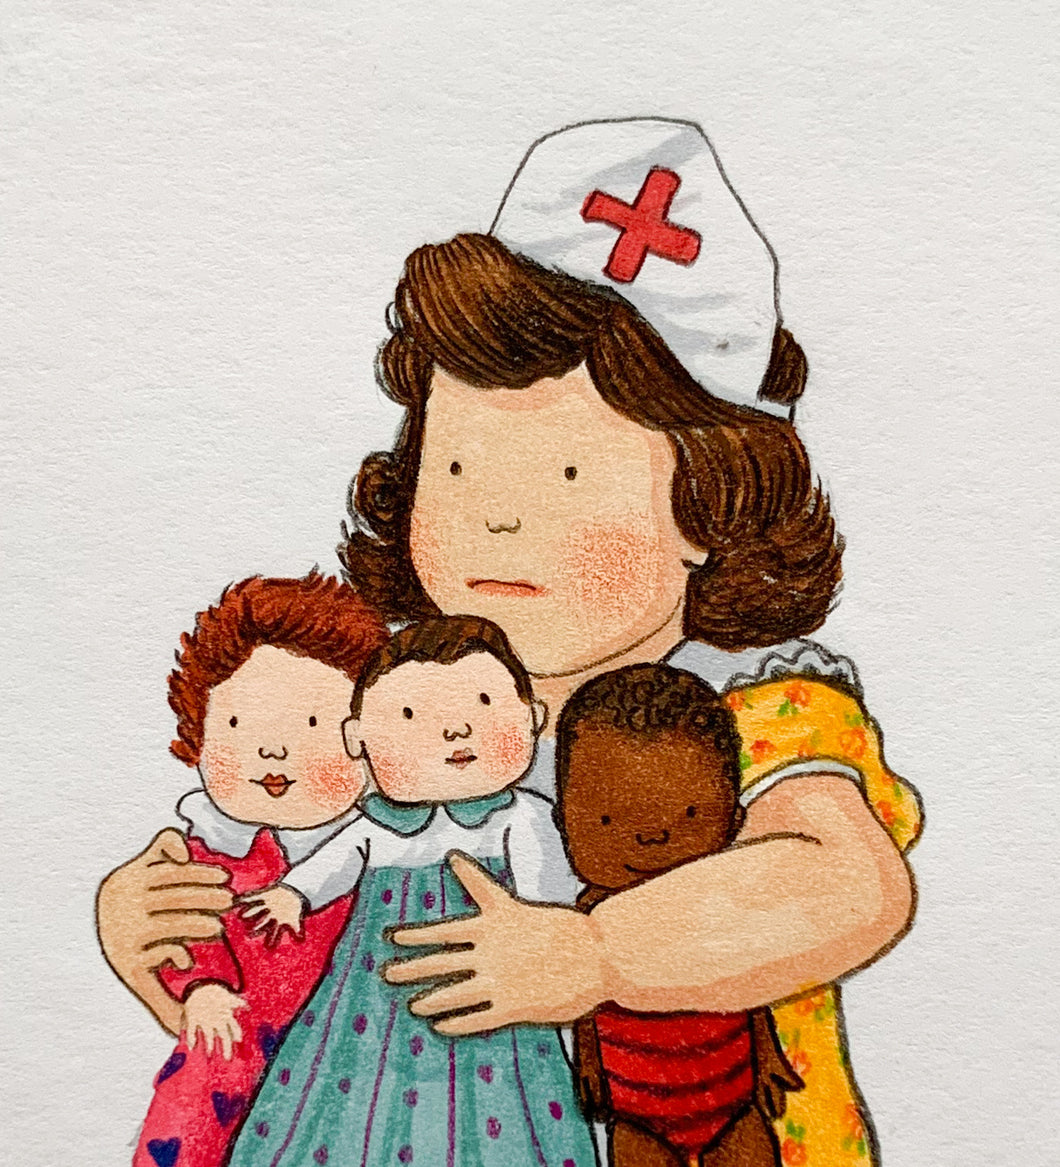 Little Nurse - Original signed artwork in marker pen and pencil crayon